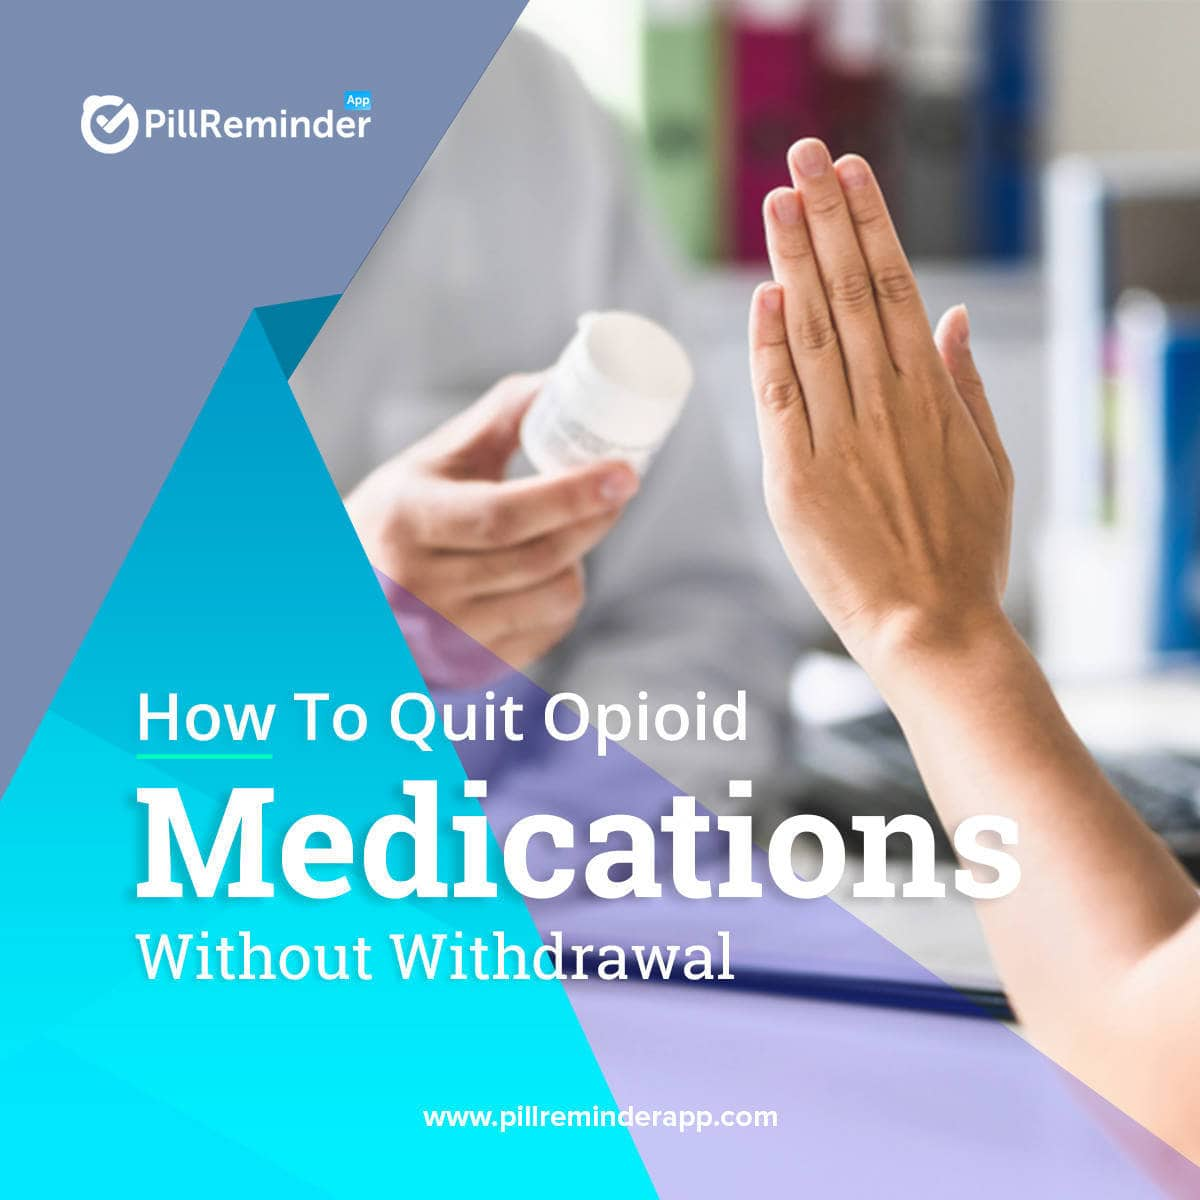 How To Quit Opioid Medications Without Withdrawal